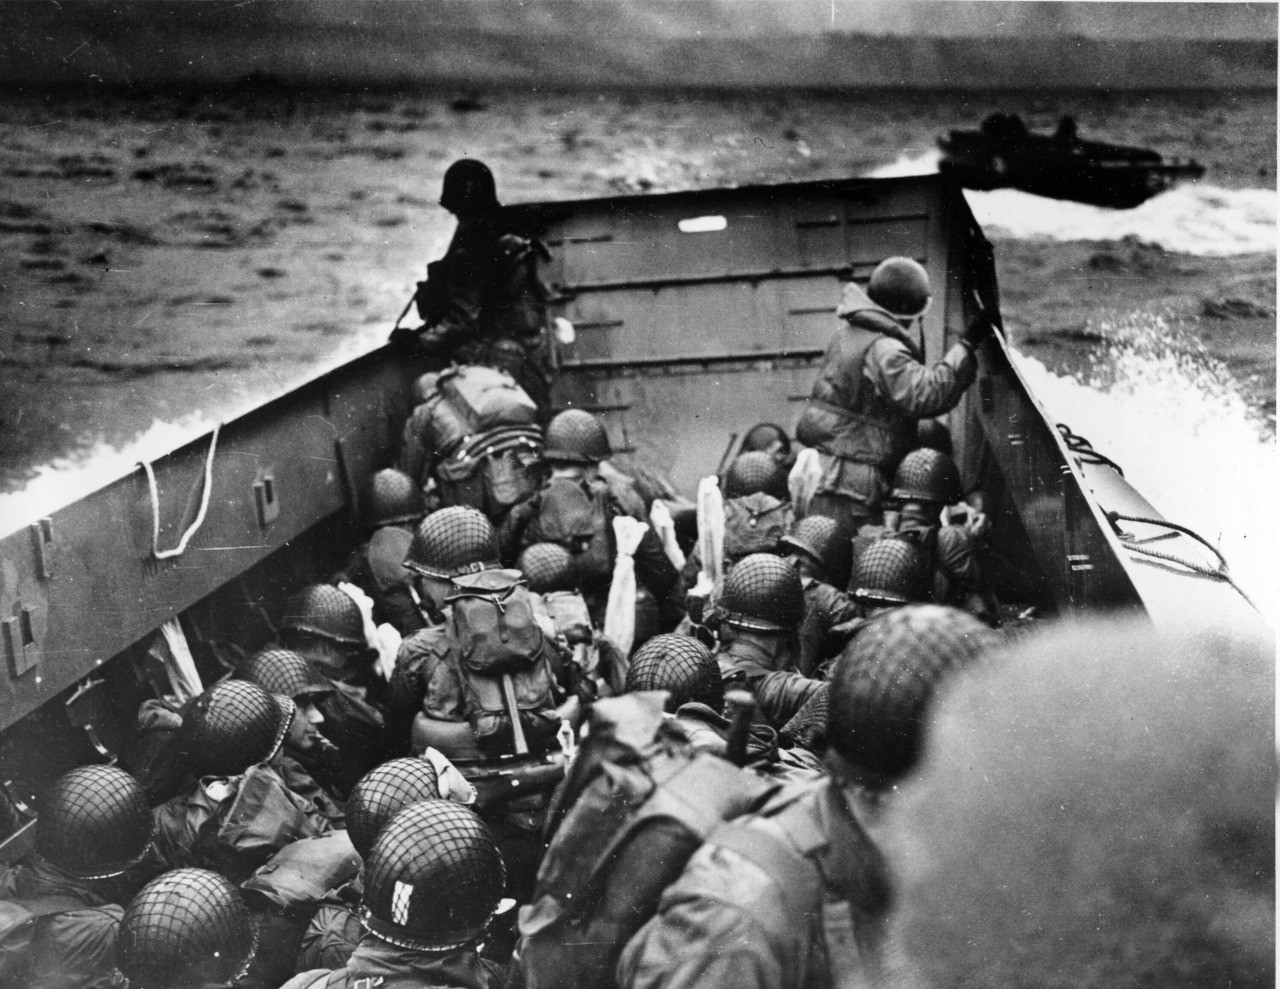 In this photo provided by the U.S. Coast Guard, a U.S. Coast Guard landing barge, tightly packed with helmeted soldiers, approaches the shore at Normandy, France, during initial Allied landing operations, June 6, 1944. These barges ride back and forth across the English Channel, bringing wave after wave of reinforcement troops to the Allied beachheads. (AP Photo/U.S. Coast Guard)